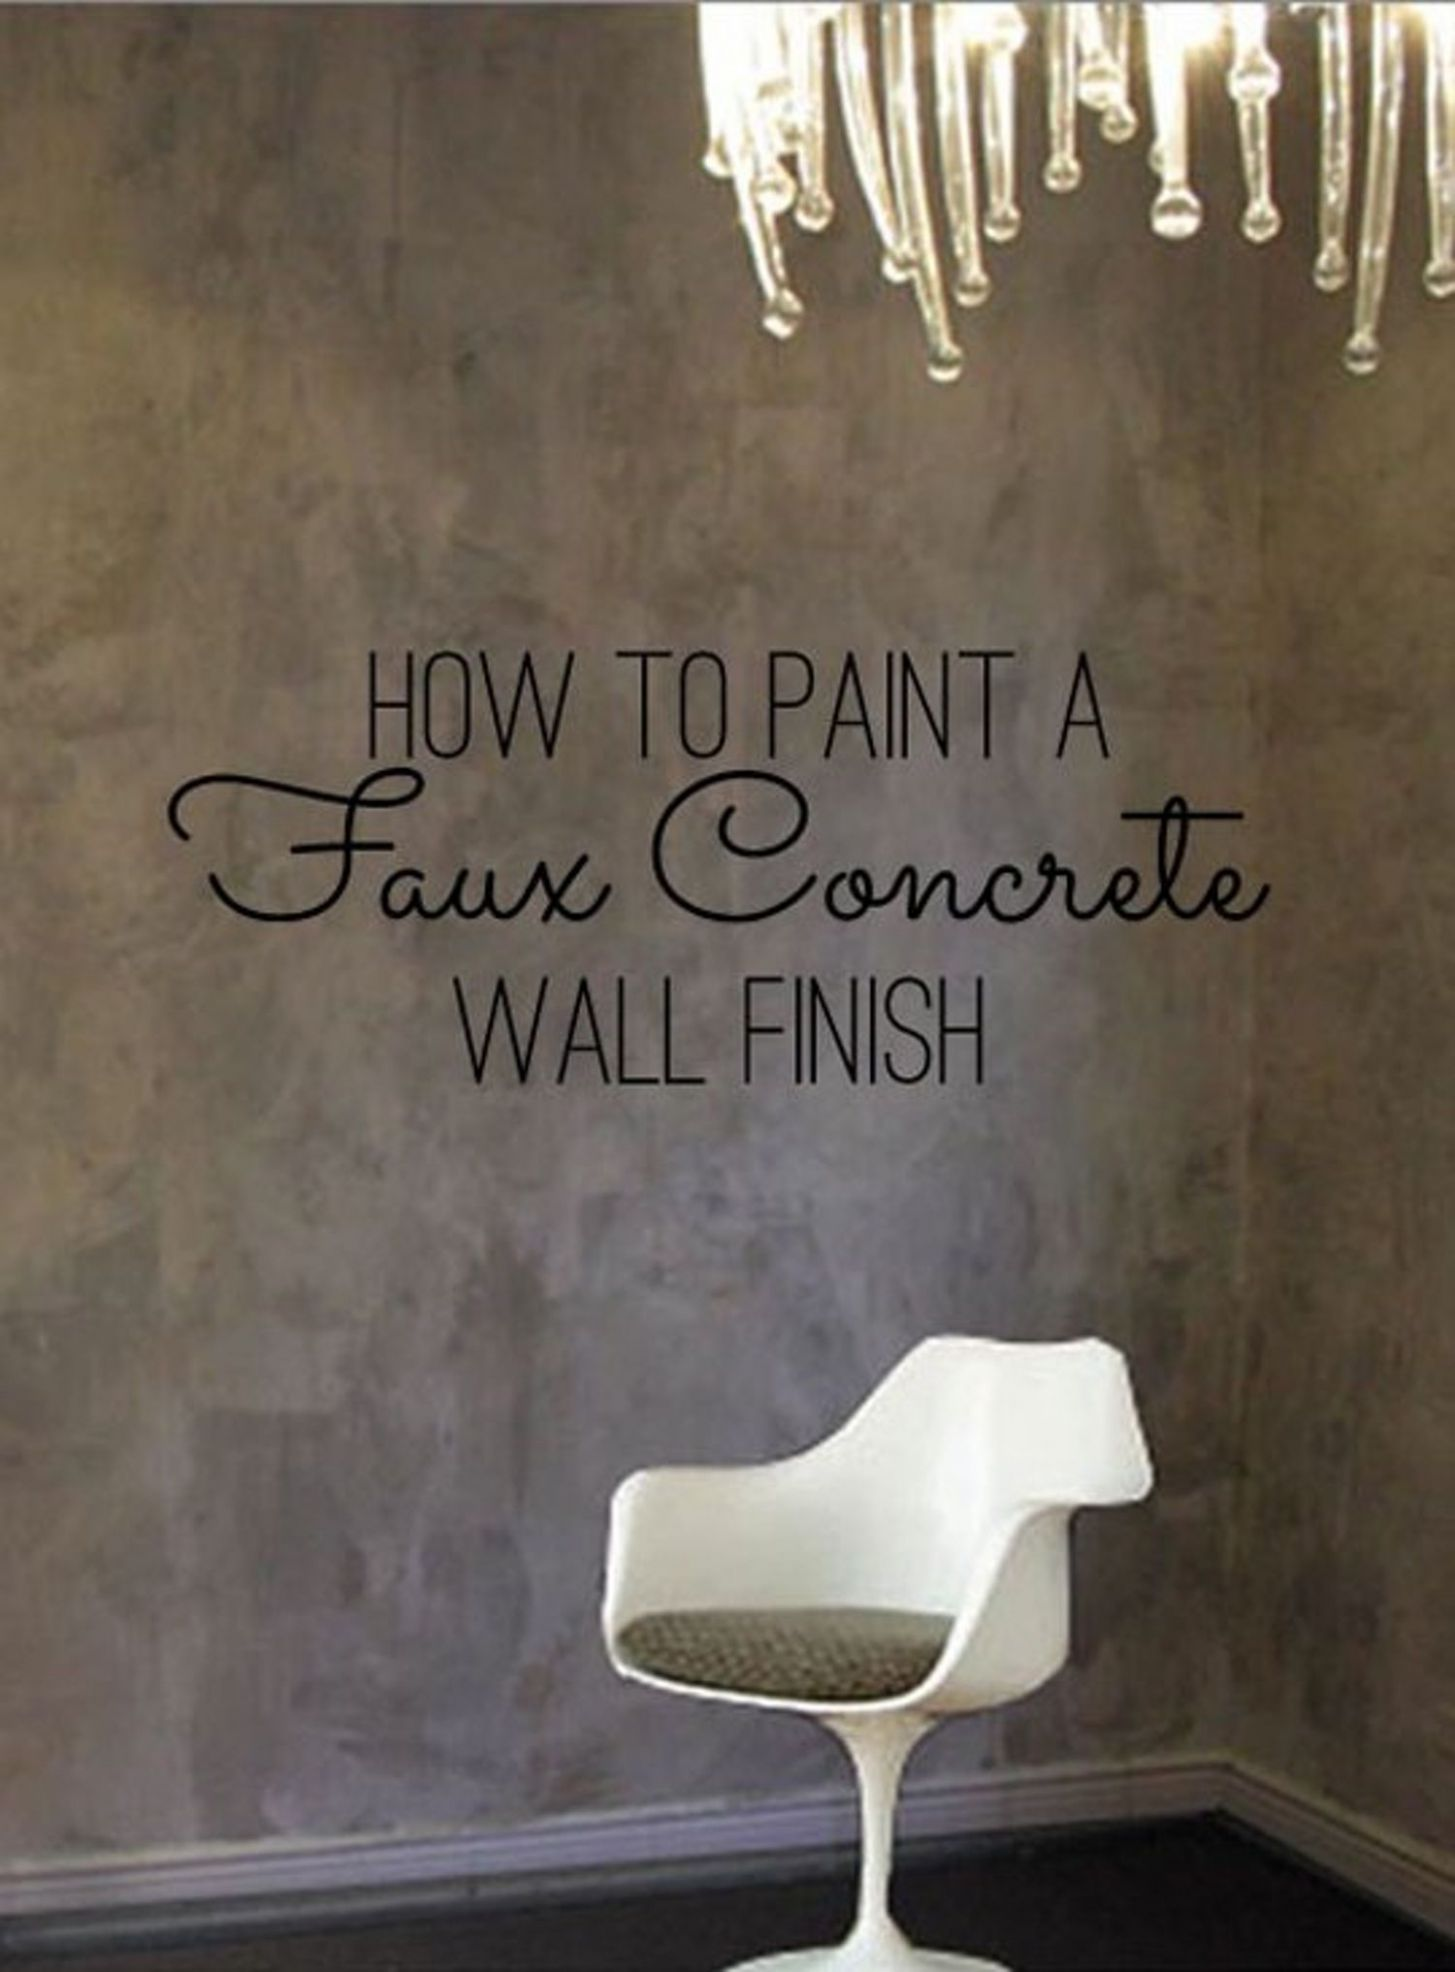 DIY Home Decor: How To Paint a Faux Concrete Wall Finish (With ..